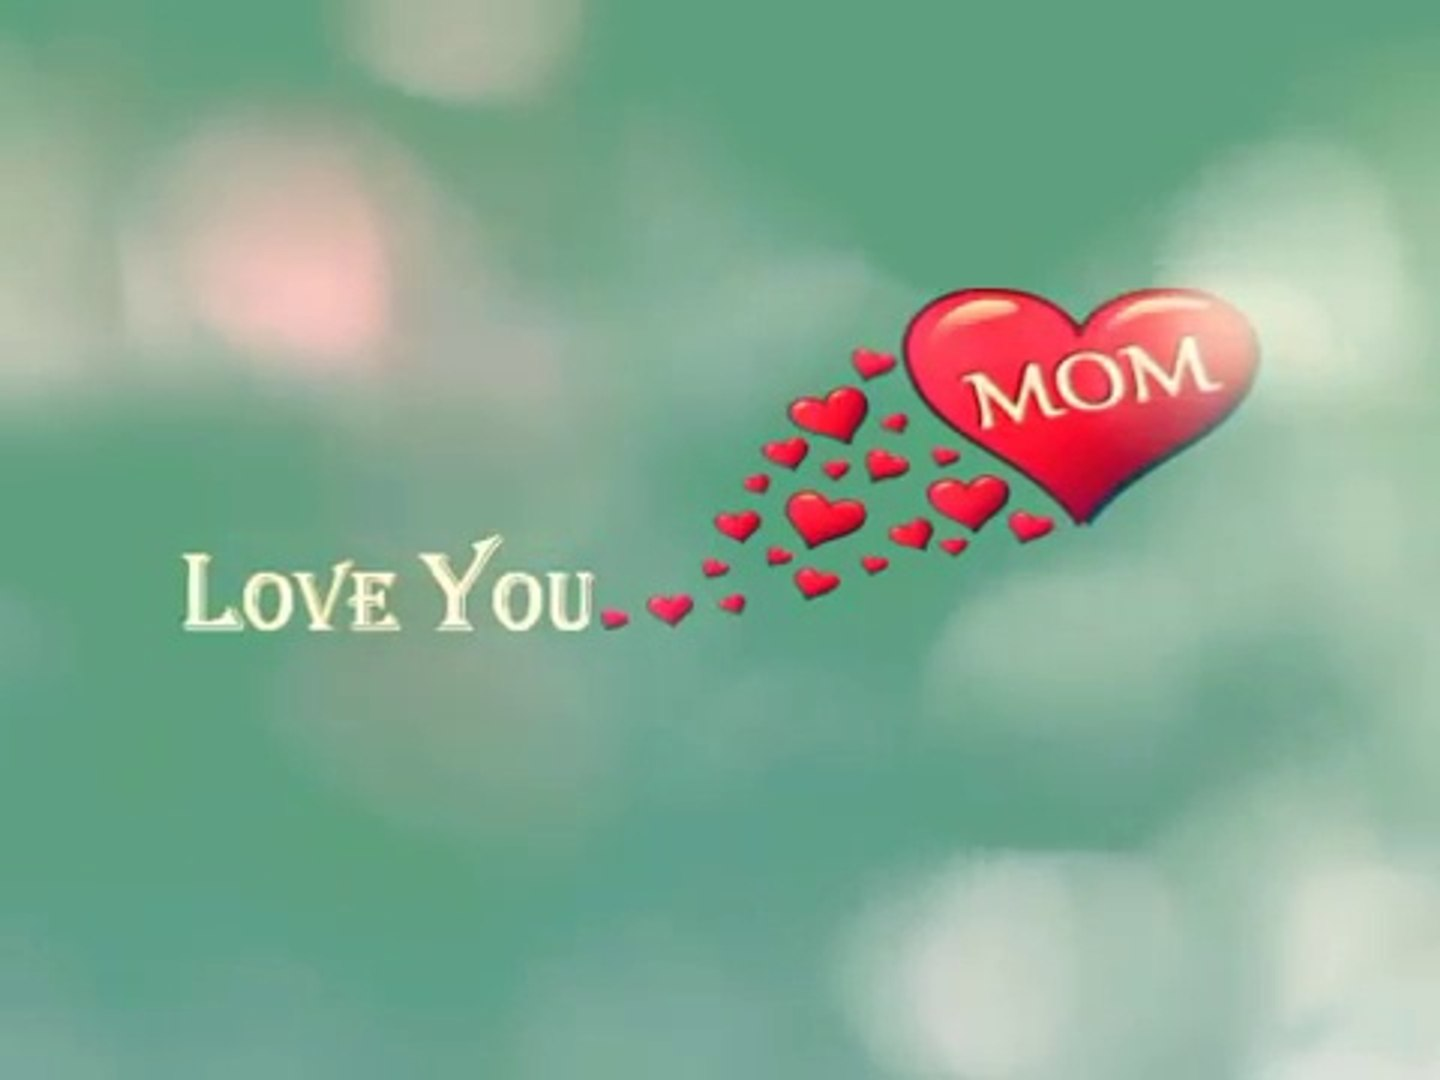 LOVE YOU MOM IN HINDI| WHATSAPP STATUS VIDEO | MAA WHATSAPP VIDEO |  mother's day status